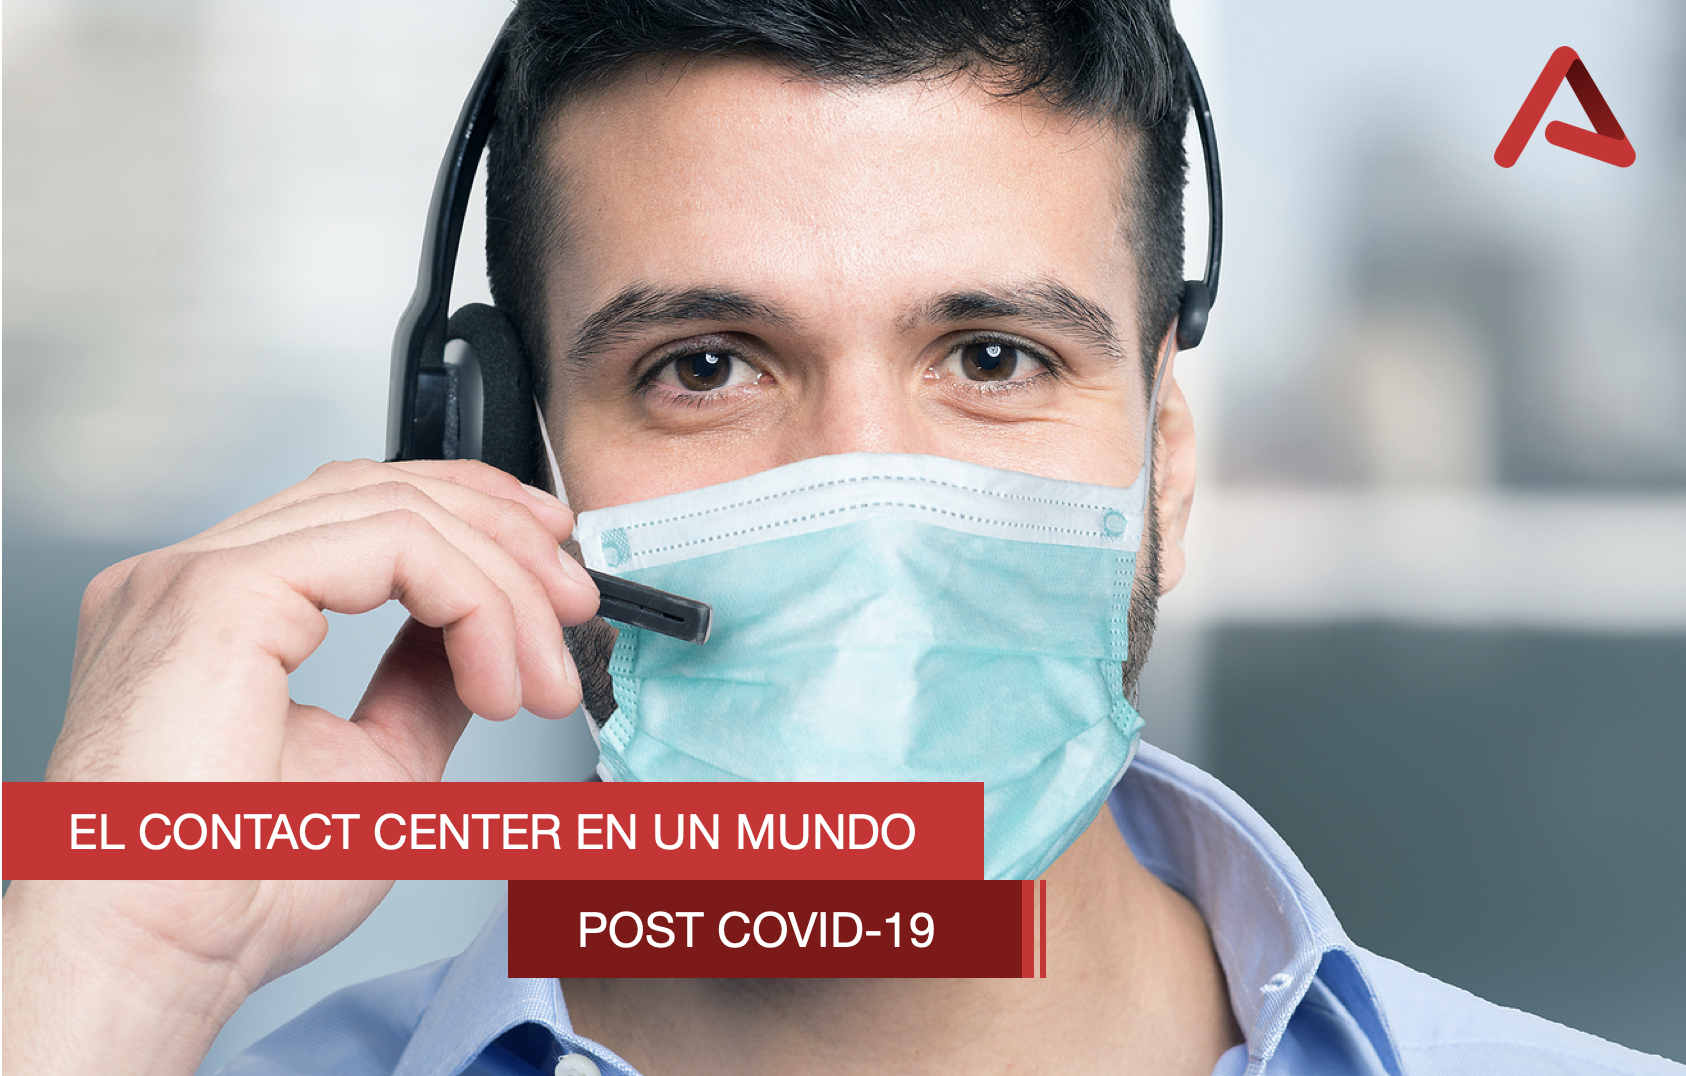 El Contact Center en un mundo post-COVID